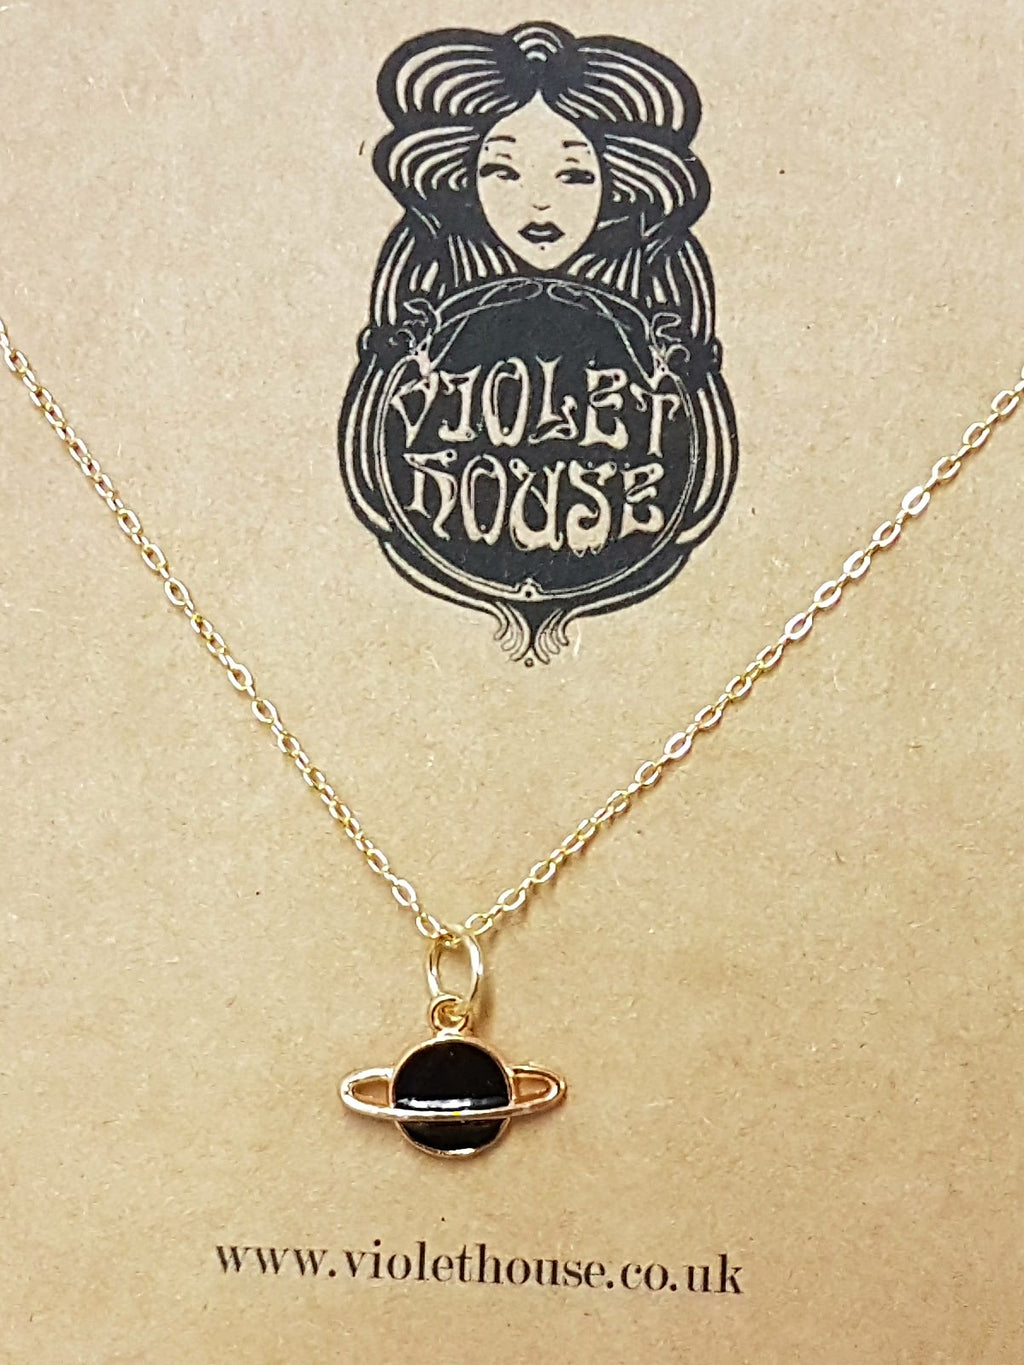 Planet necklace - Violet House